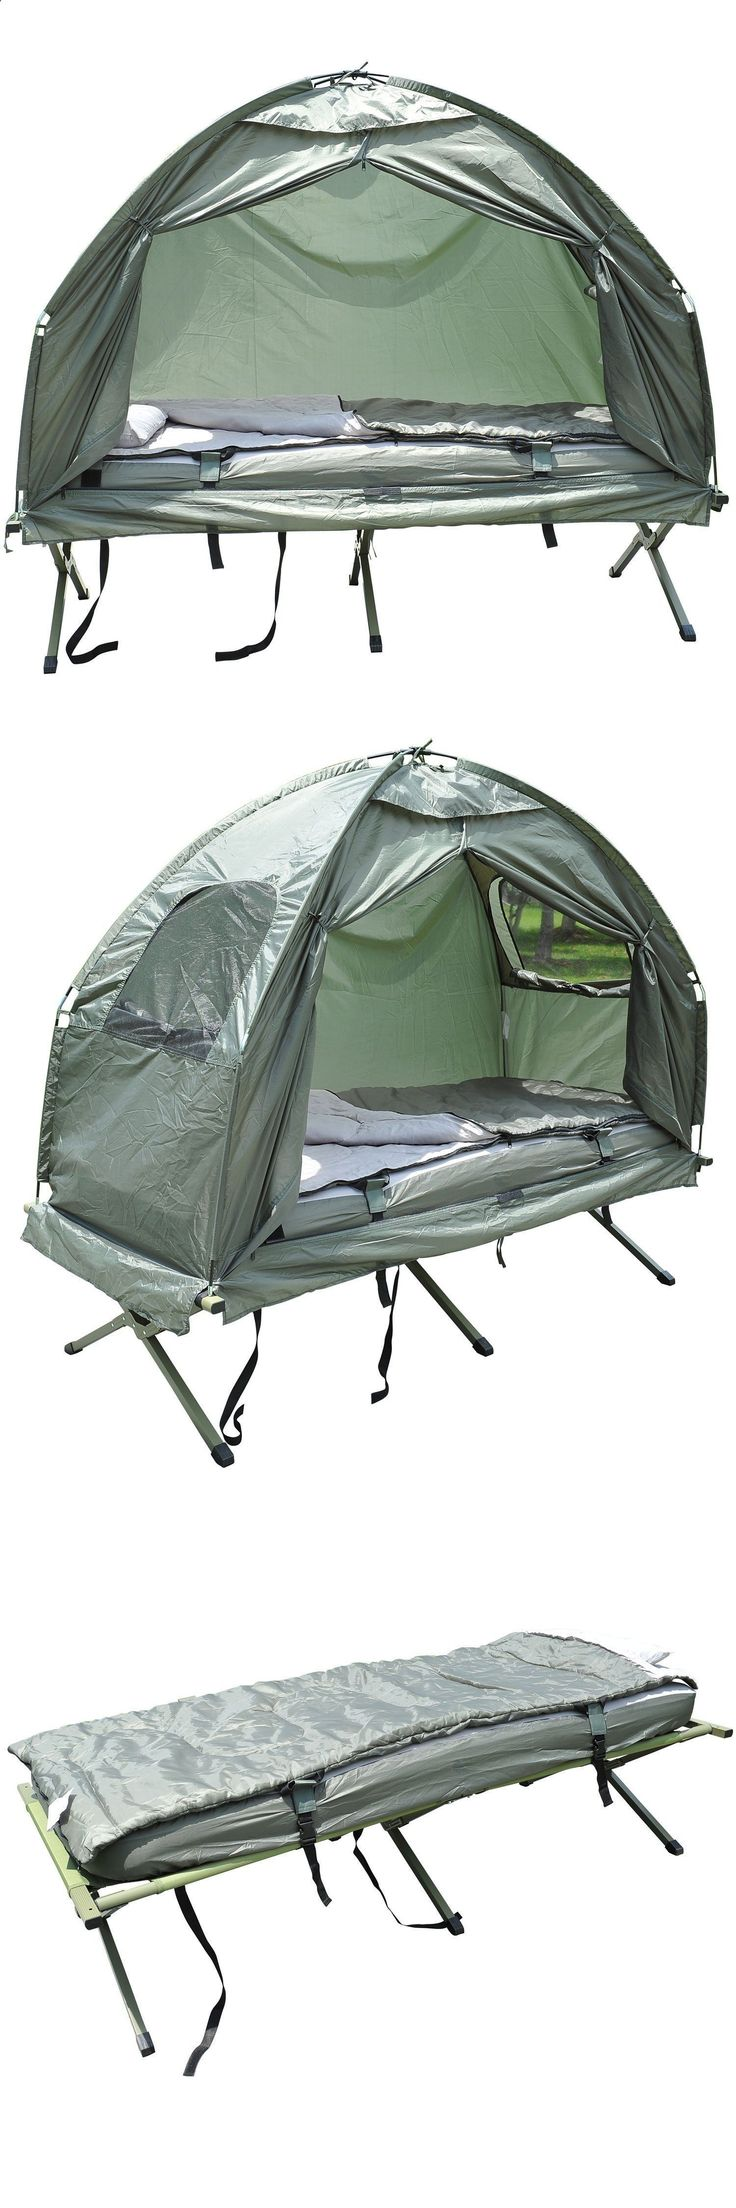 Other Camping Sleeping Gear 16040: Portable Tent Pop Up Camping Cot Outdoor Hiking Bed W Air Mattress Sleeping Bag -> BUY IT NOW ONLY: $200.99 on eBay!